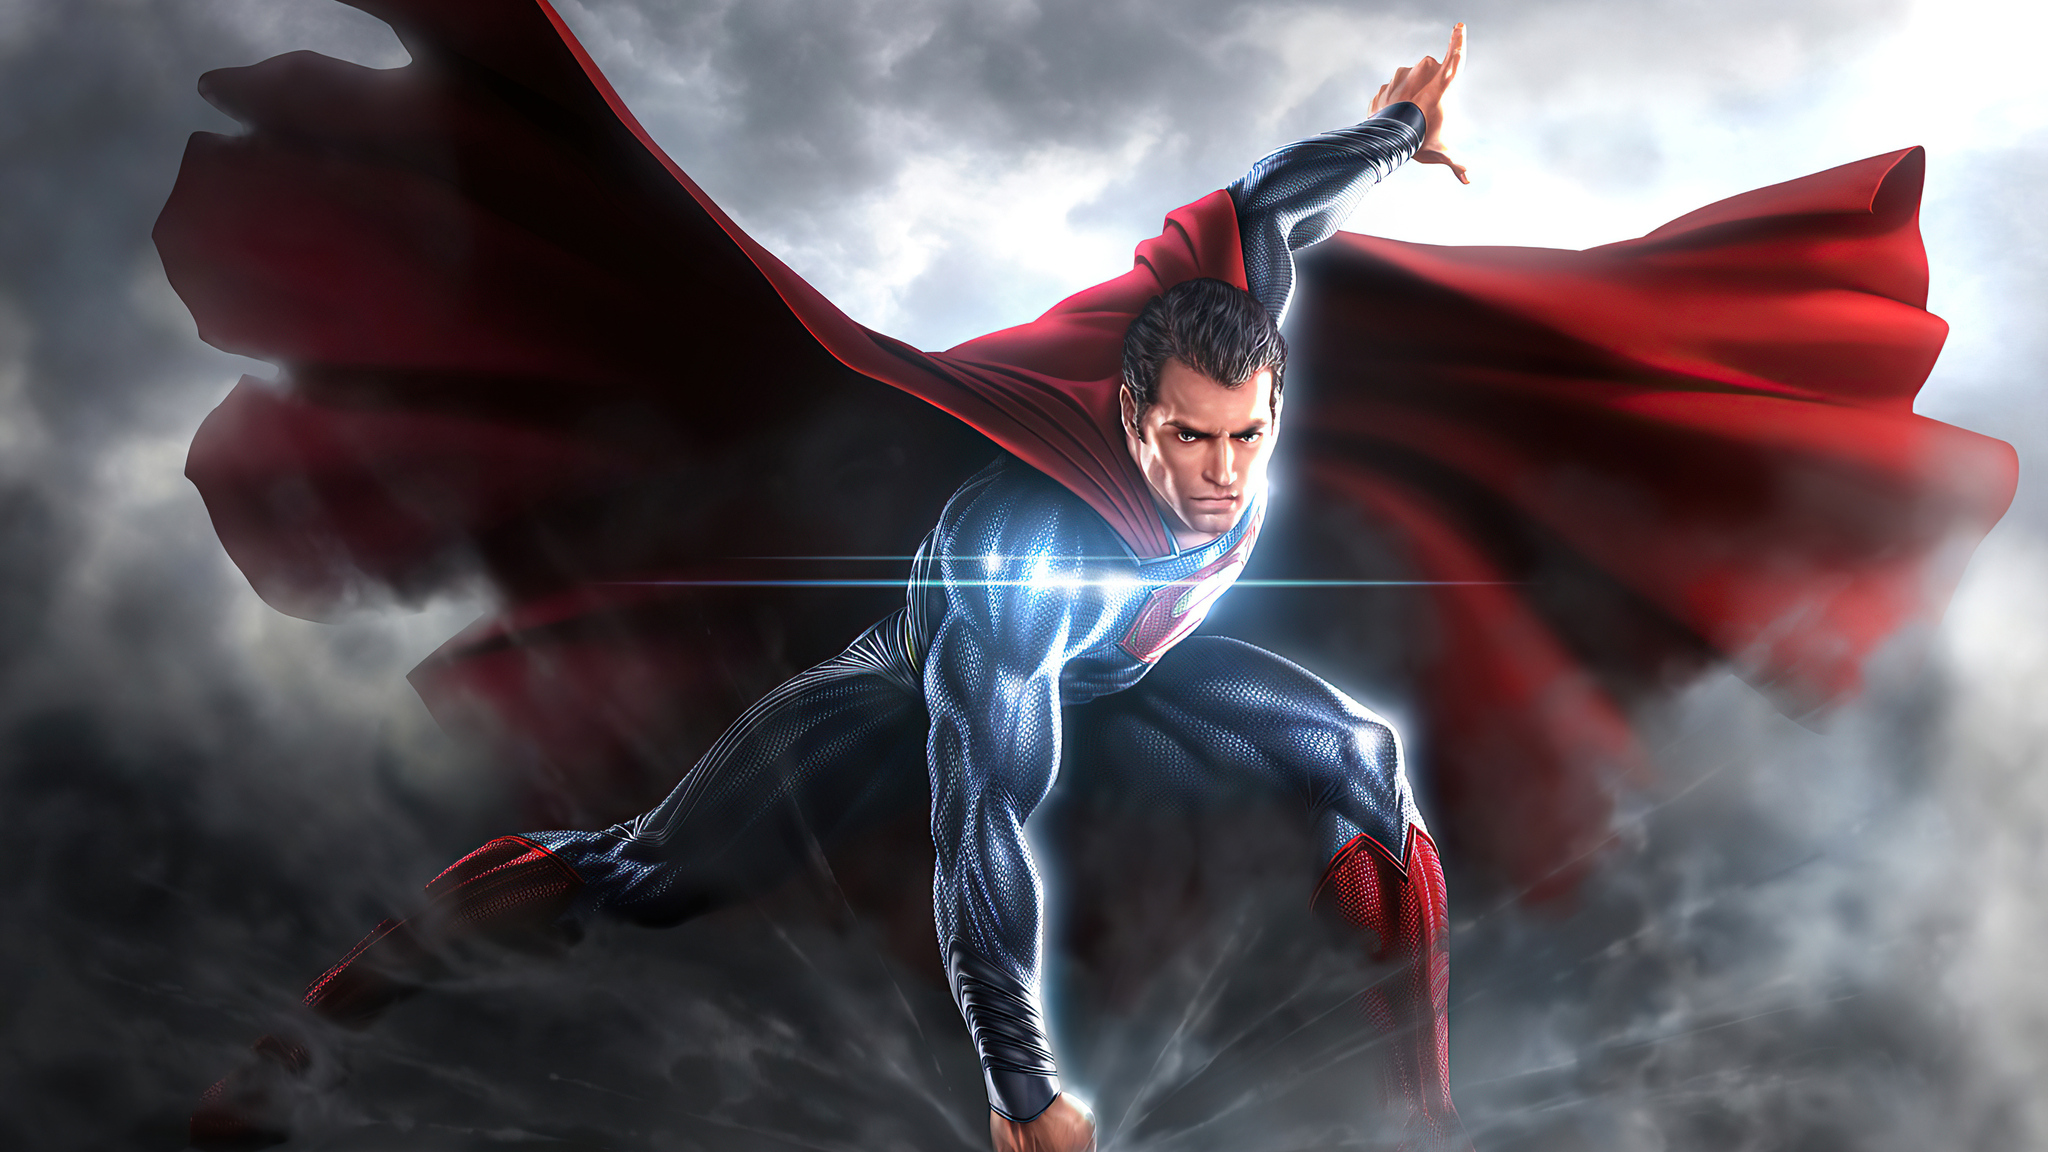 superman-2020-artwork-4k-te.jpg